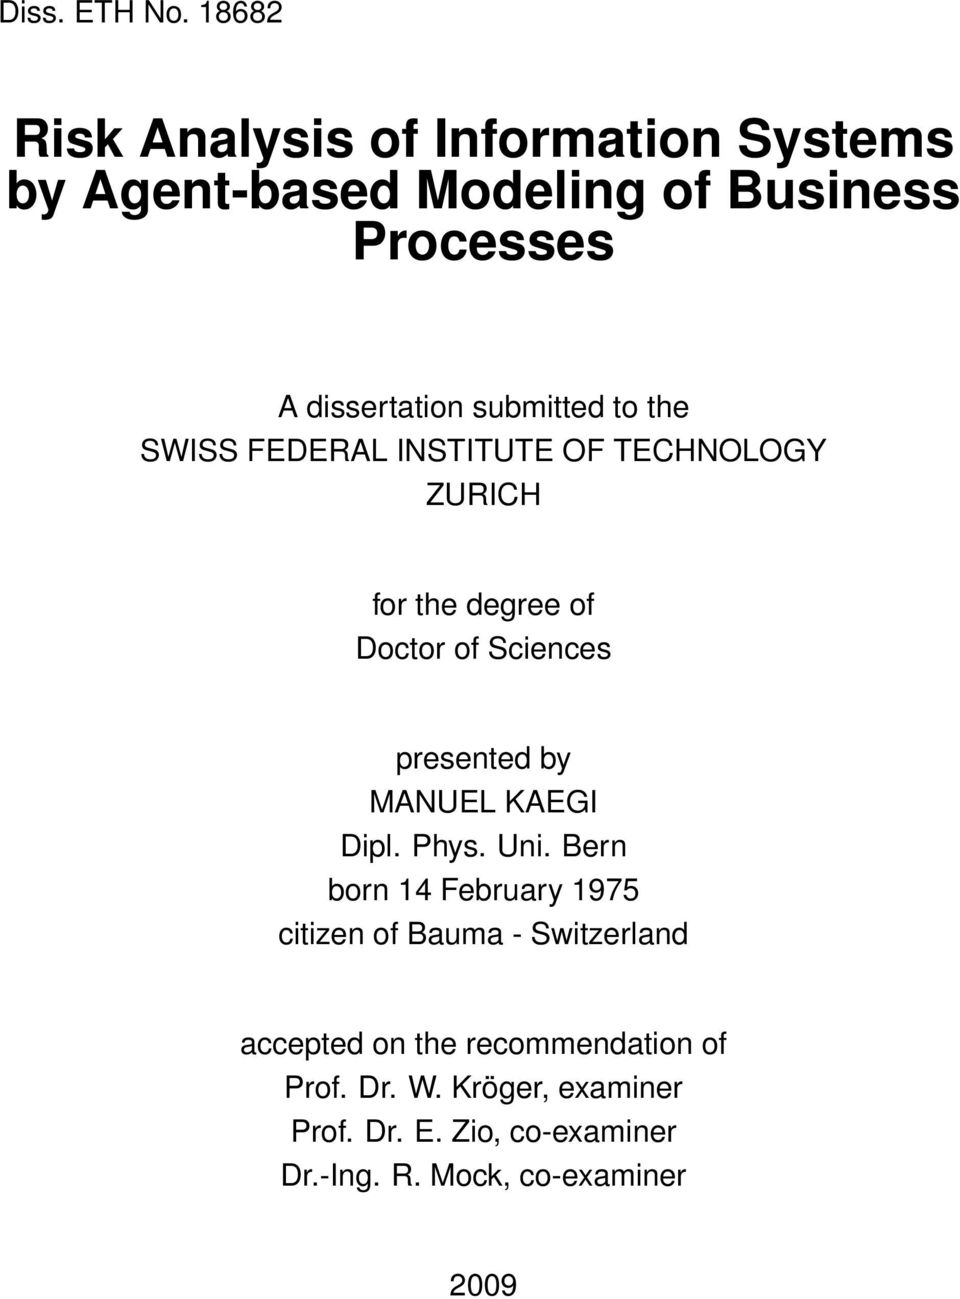 submitted to the SWISS FEDERAL INSTITUTE OF TECHNOLOGY ZURICH for the degree of Doctor of Sciences presented by